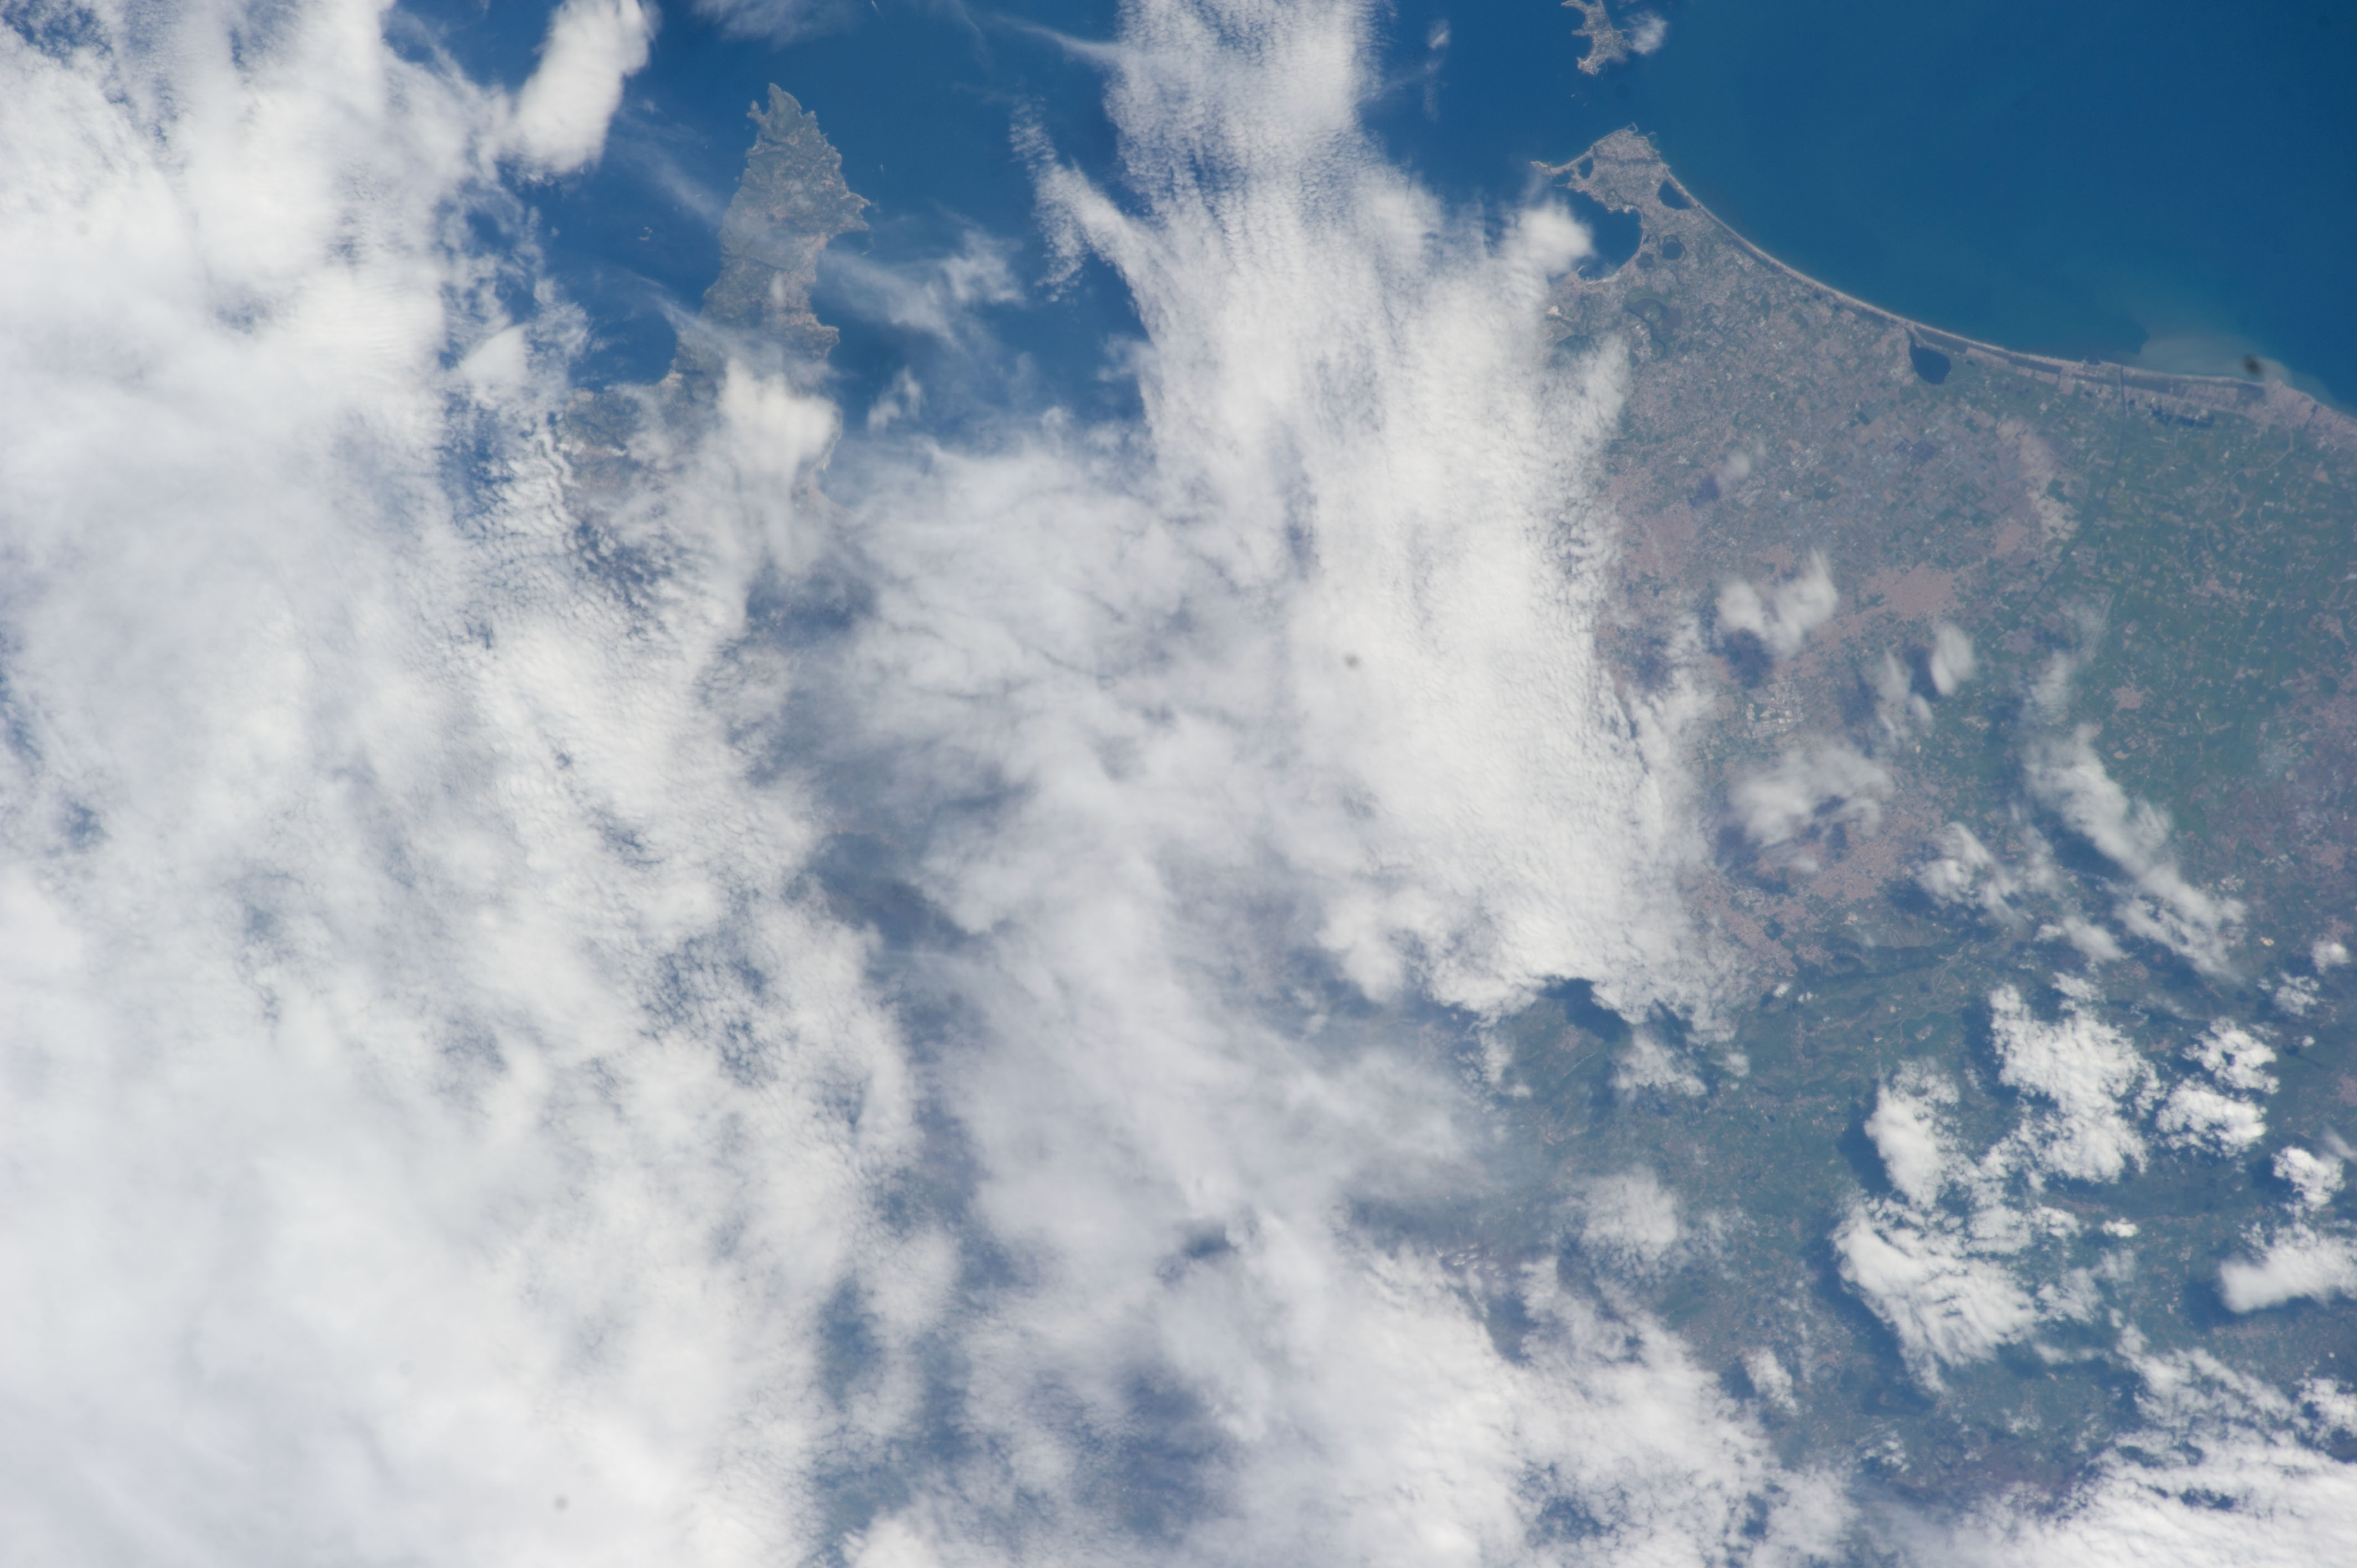 ISS039-E-013076